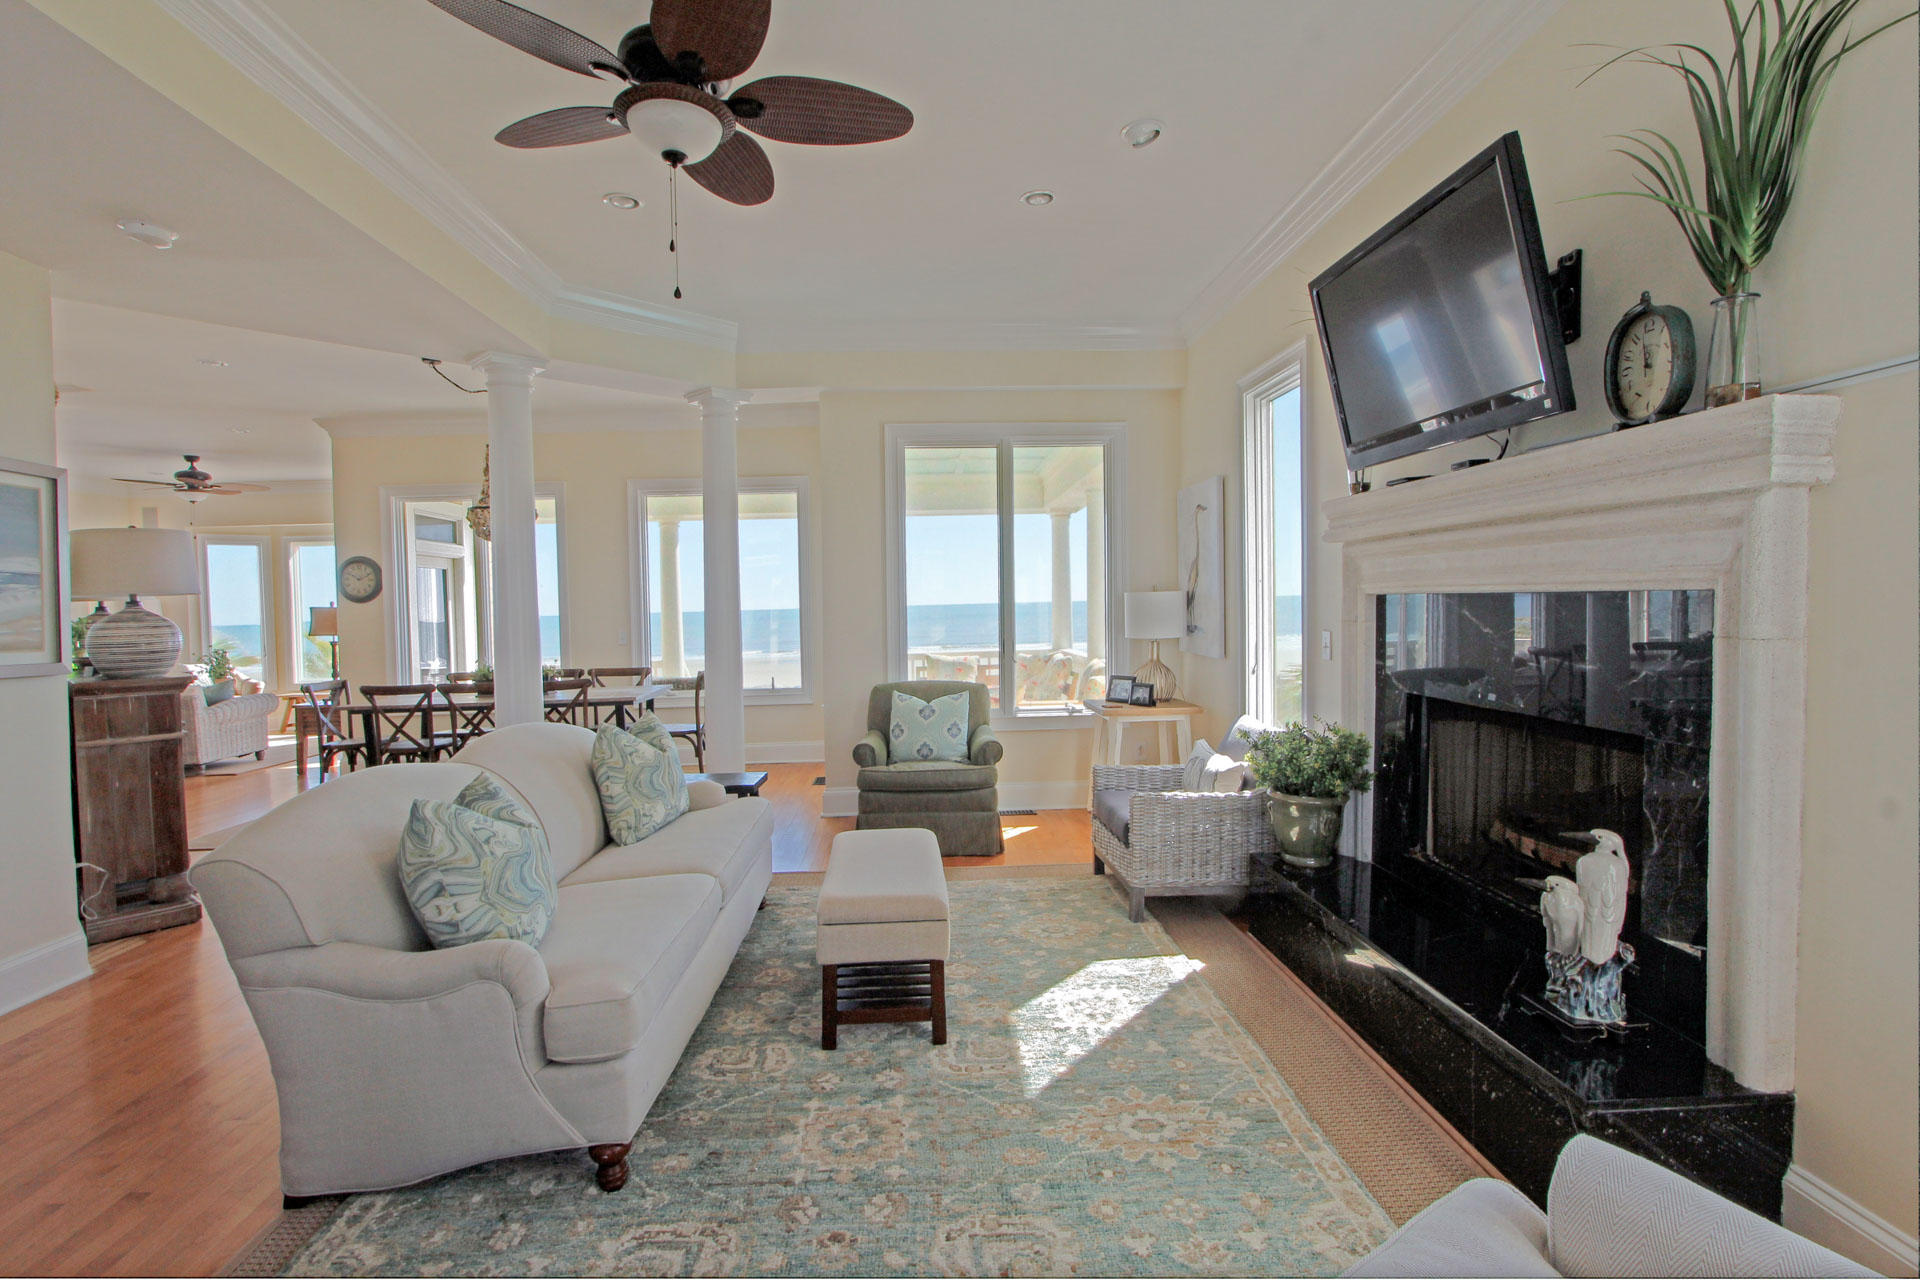 Isle of Palms Homes For Sale - 810 Ocean, Isle of Palms, SC - 28